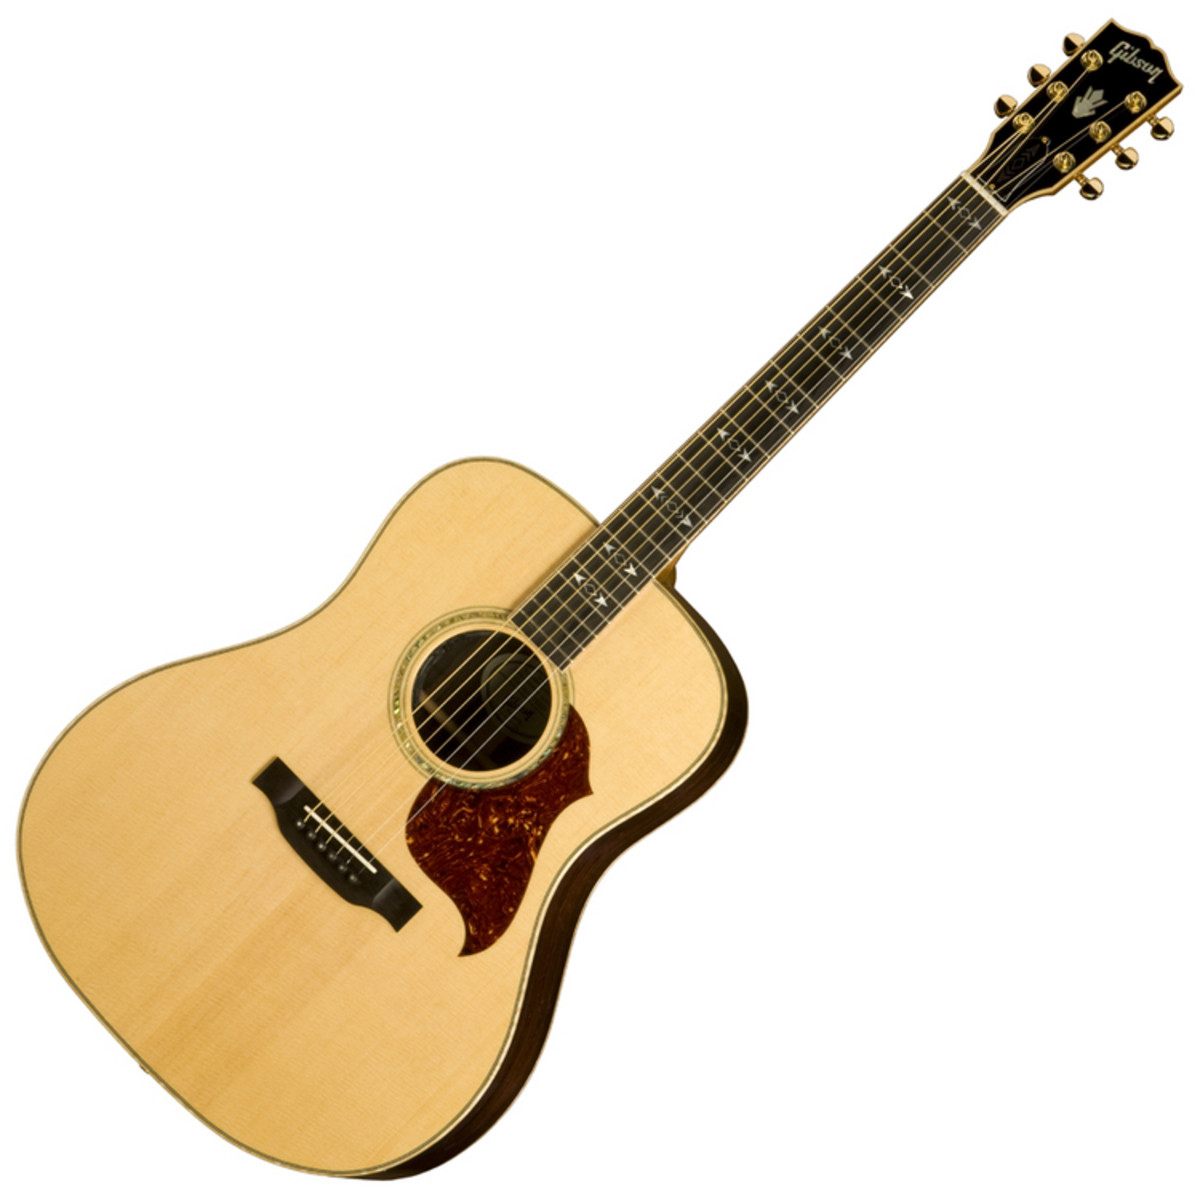 gibson songwriter deluxe standard electro acoustic guitar at gear4music. Black Bedroom Furniture Sets. Home Design Ideas